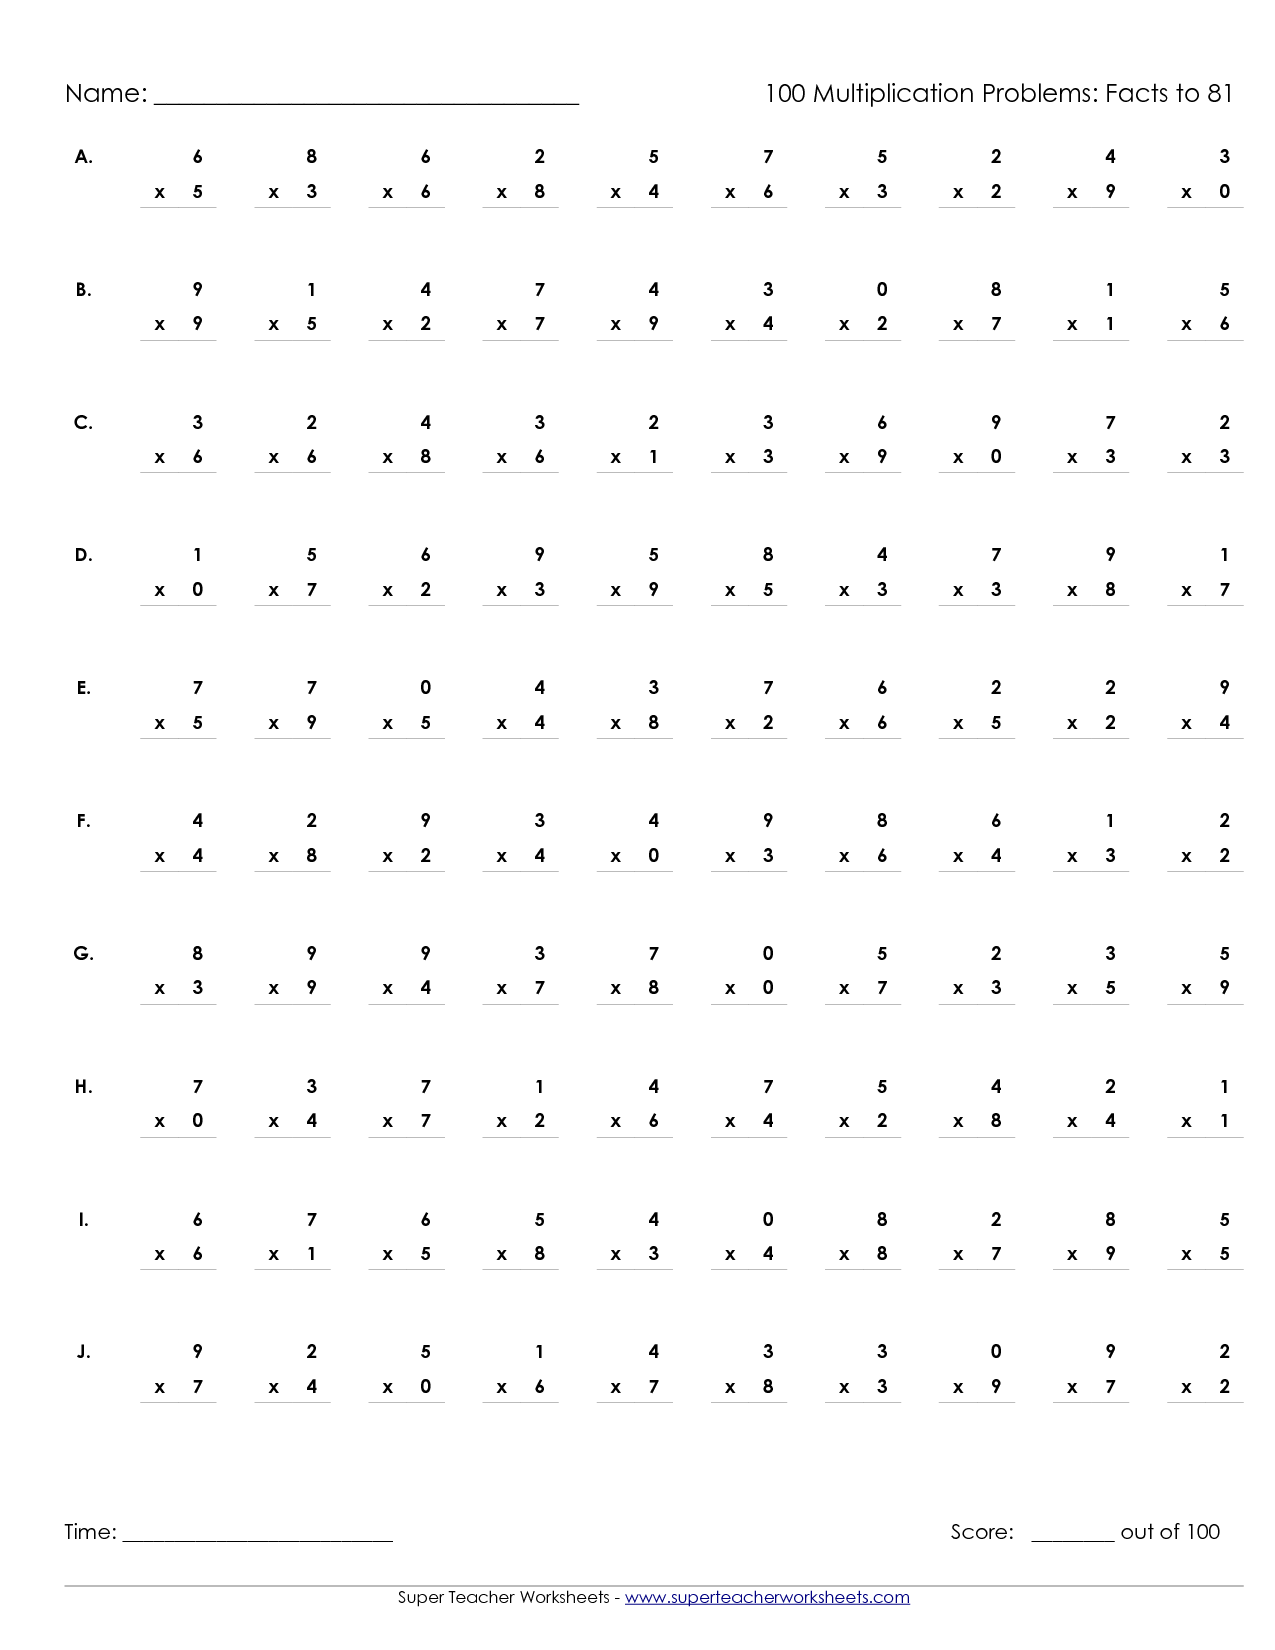 6 Images of 100 Multiplication Printable Out Sheet